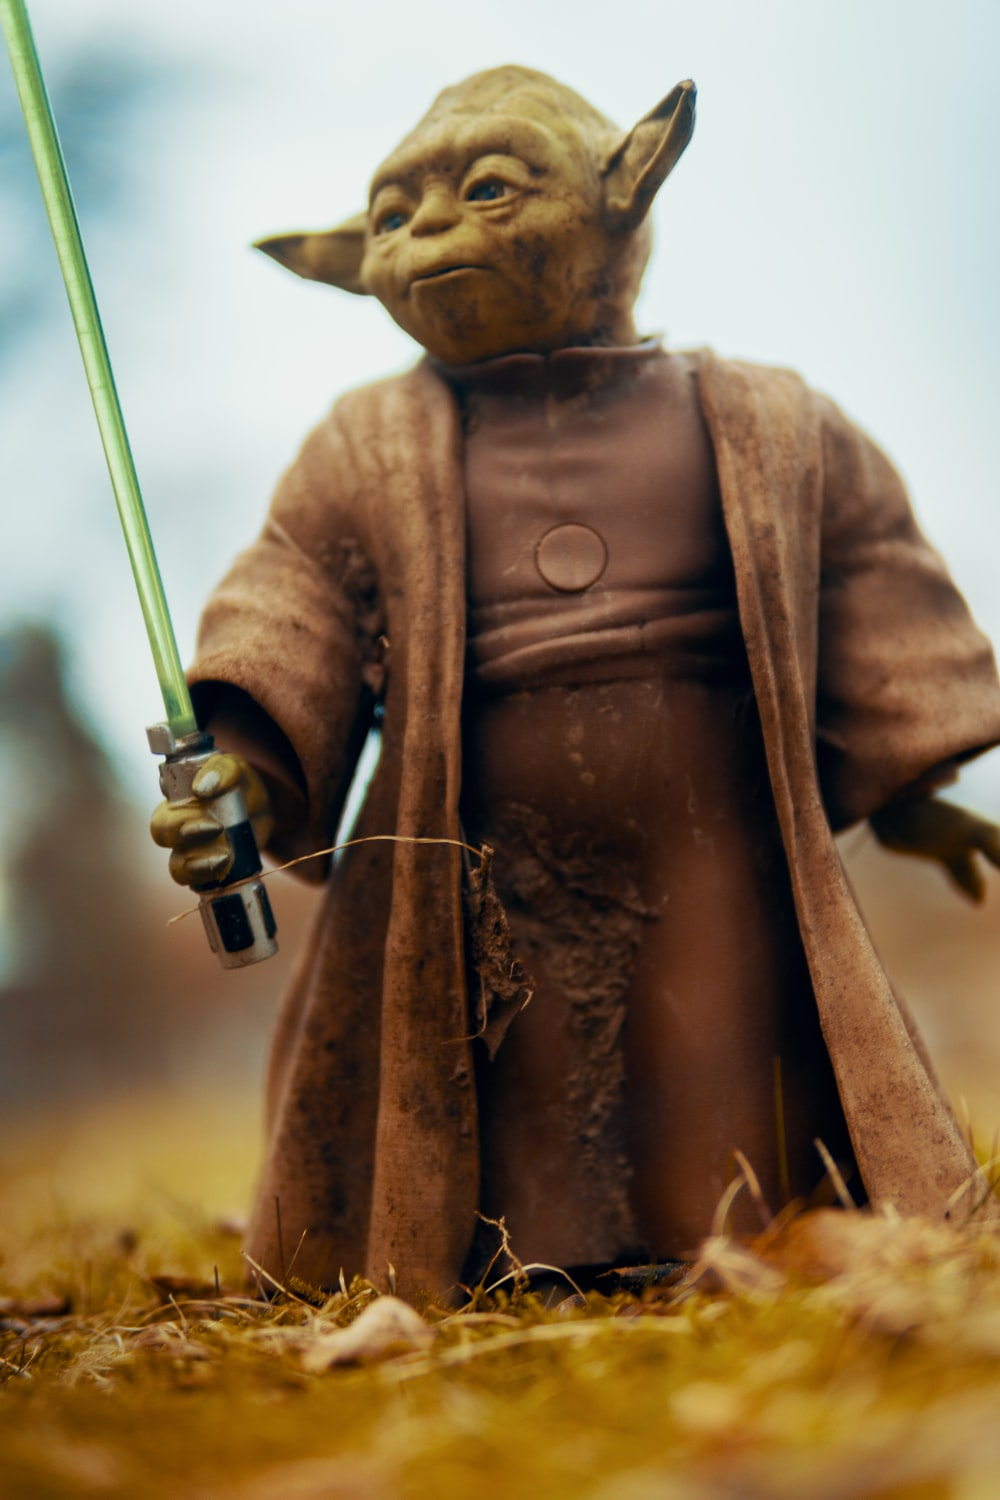 Star Wars character with sword doll